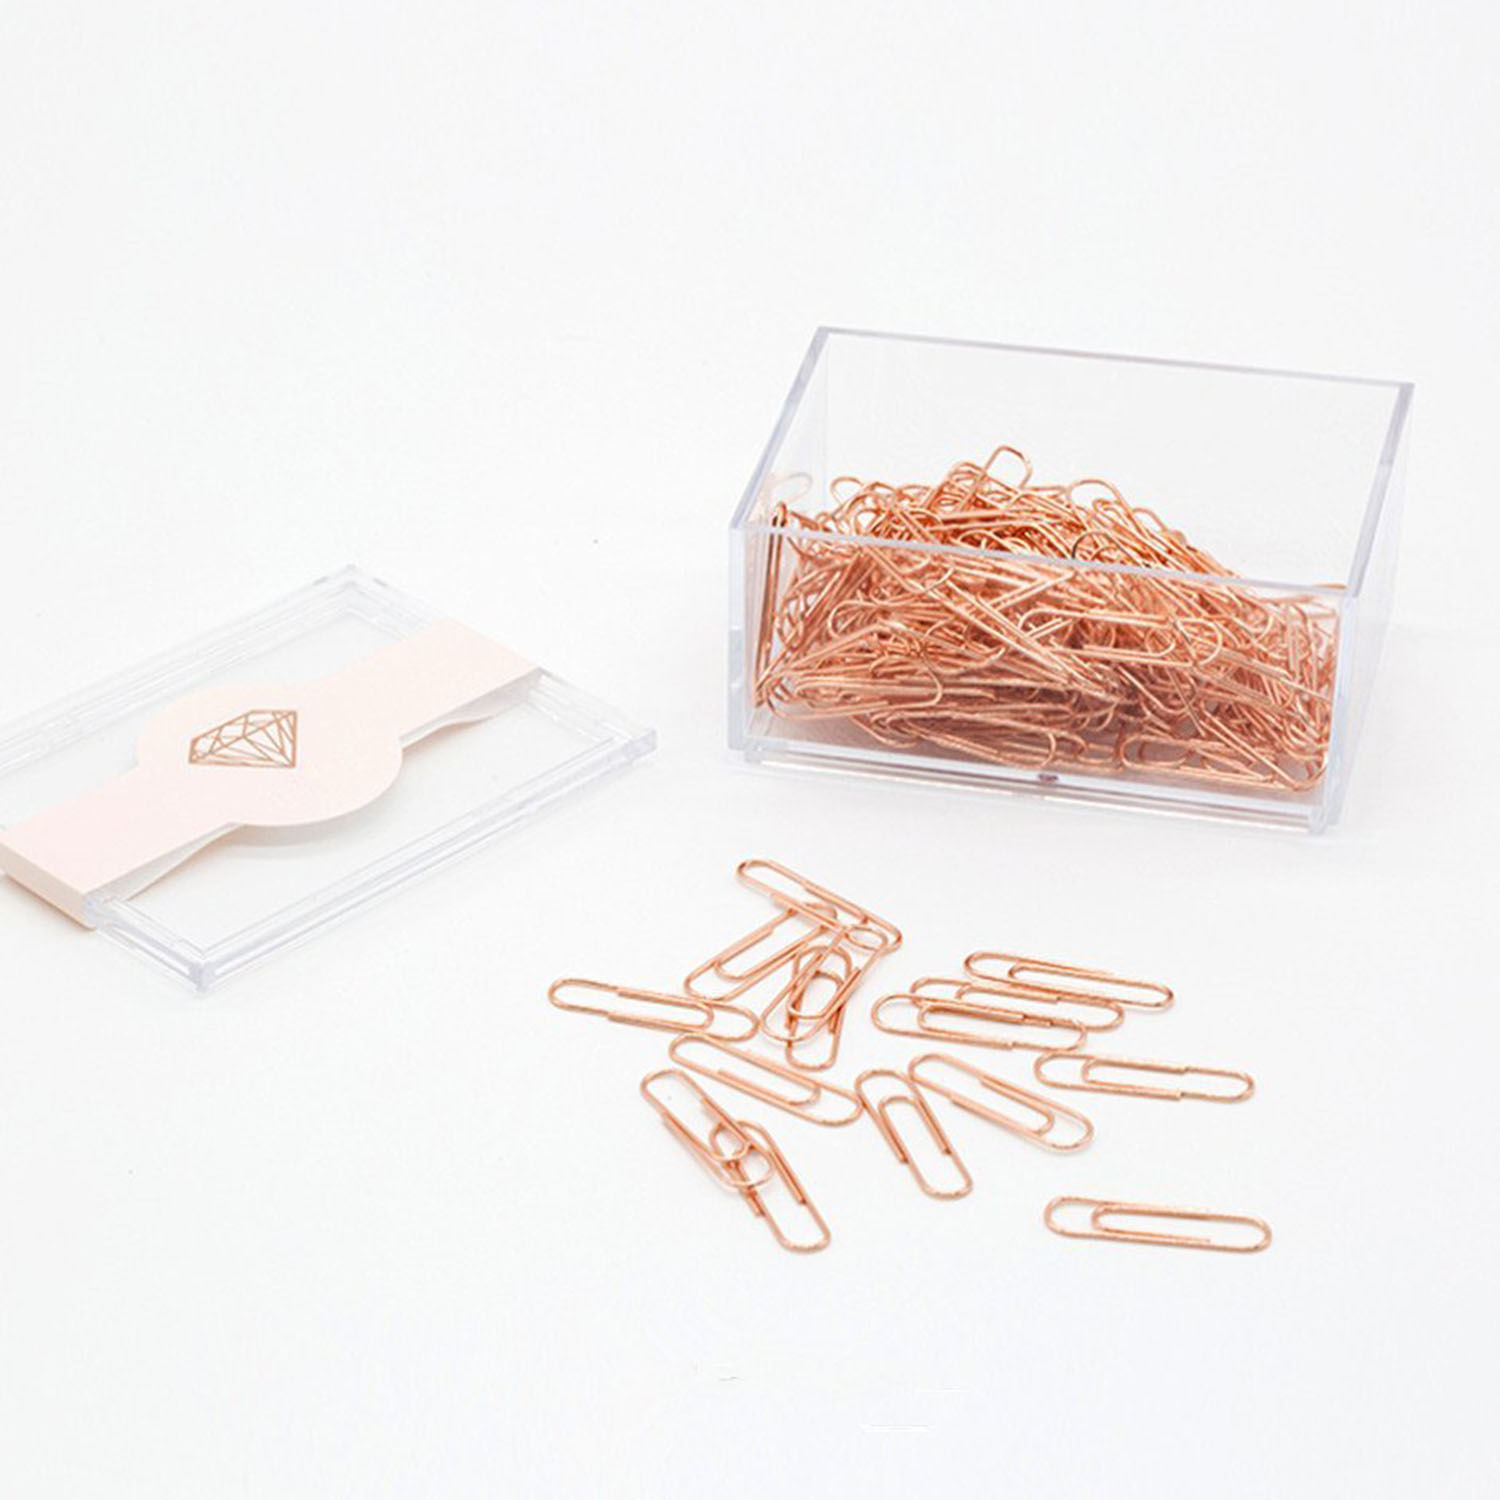 250 Pc Silver Metal Paper Clips Size 28 Mm FAST SHIPPING